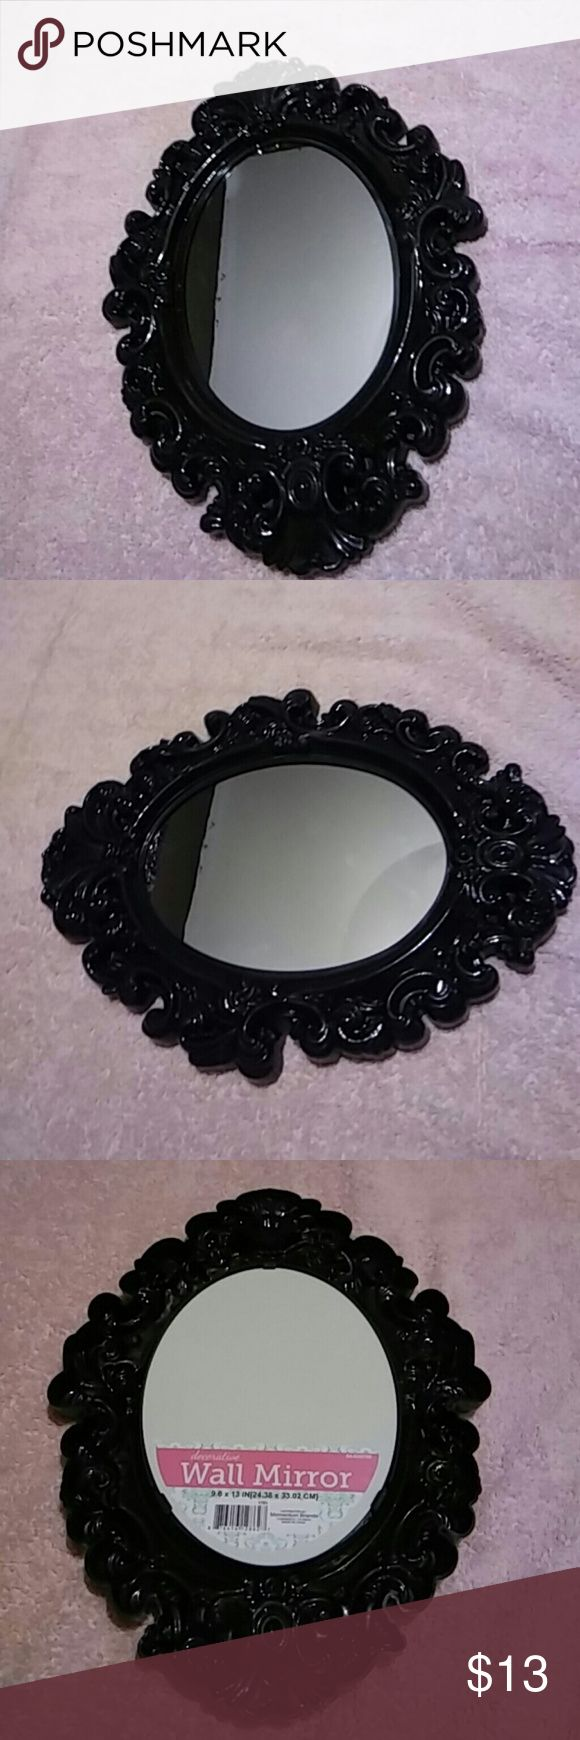 Black wall mirror Brand new black wall mirror measurements: Wall Mirror 9.6x13in(24.38x33.02cm) Other